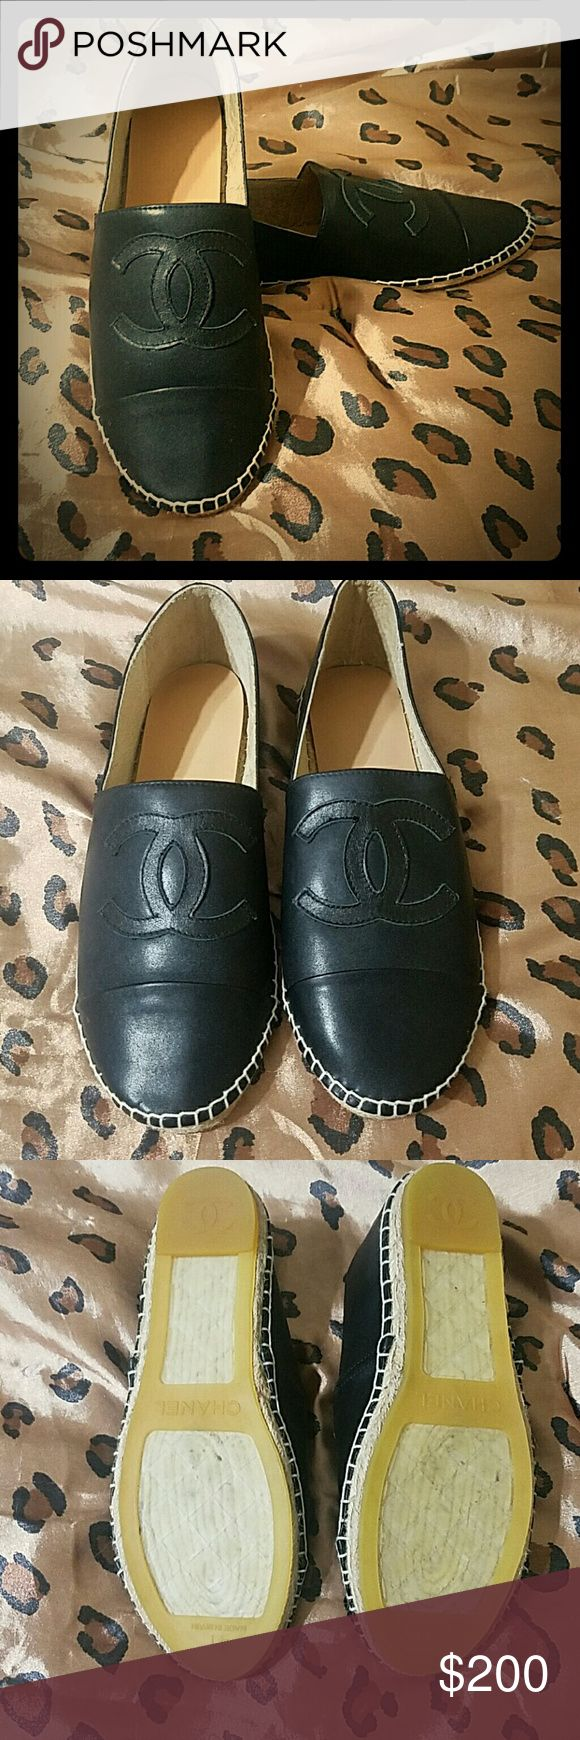 Chanel espadrilles Too big for me. Never worn only tried on.  Would best fit 9-9.5.  Price reflects. CHANEL Shoes Espadrilles